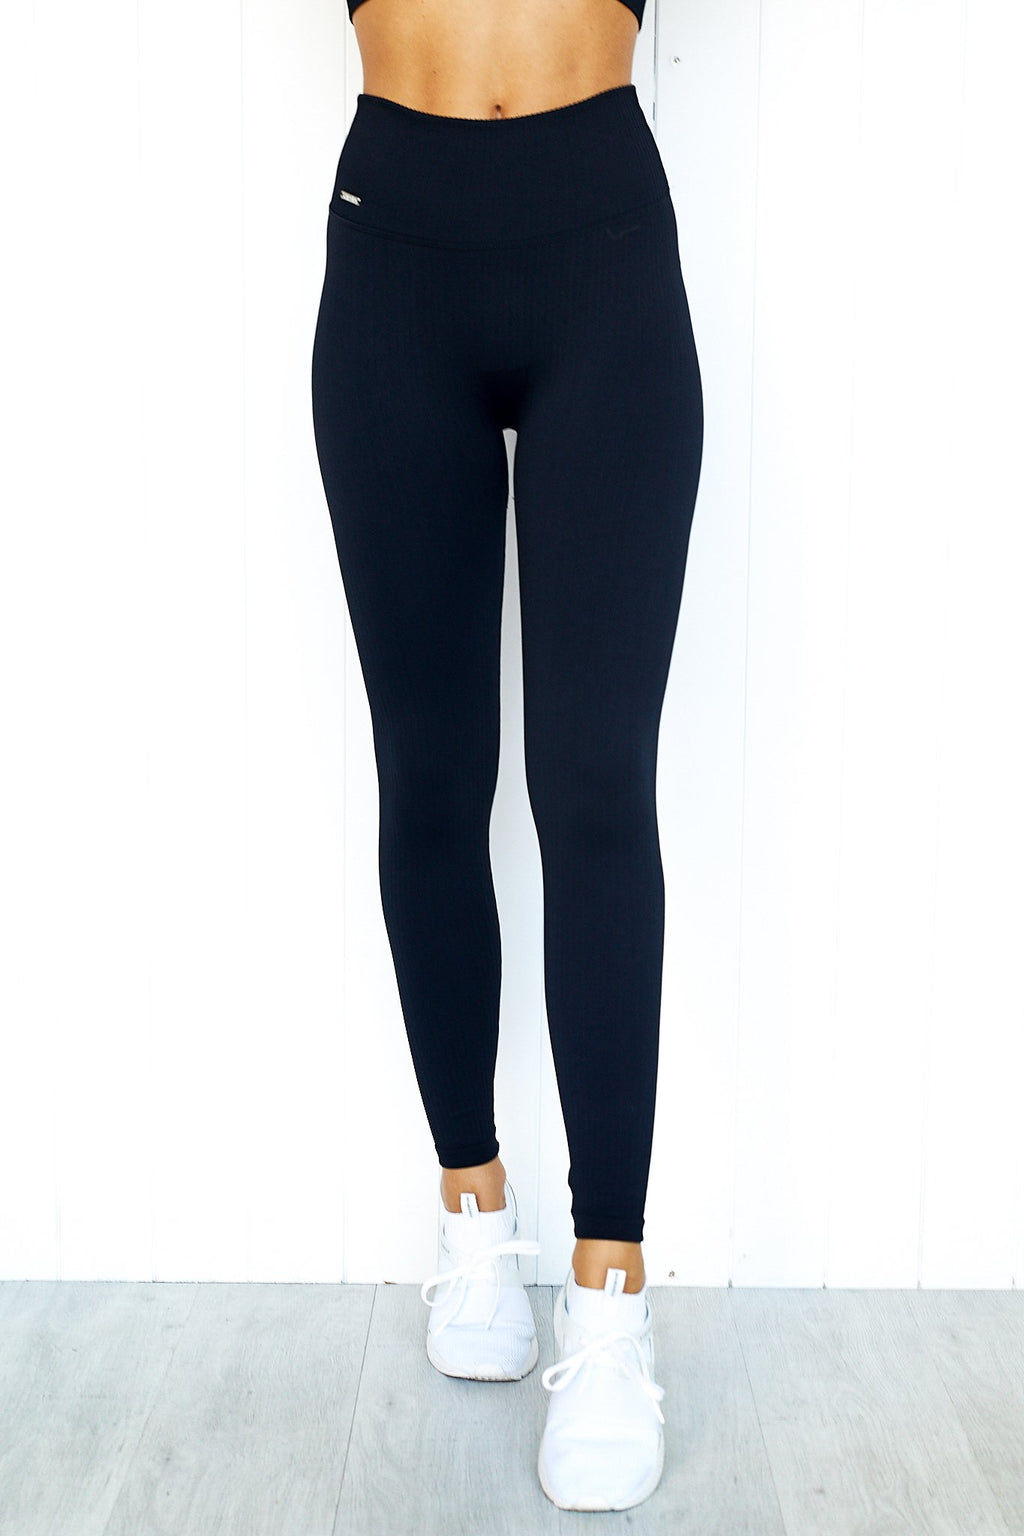 Black Ribbed Seamless Tights - PURE DASH